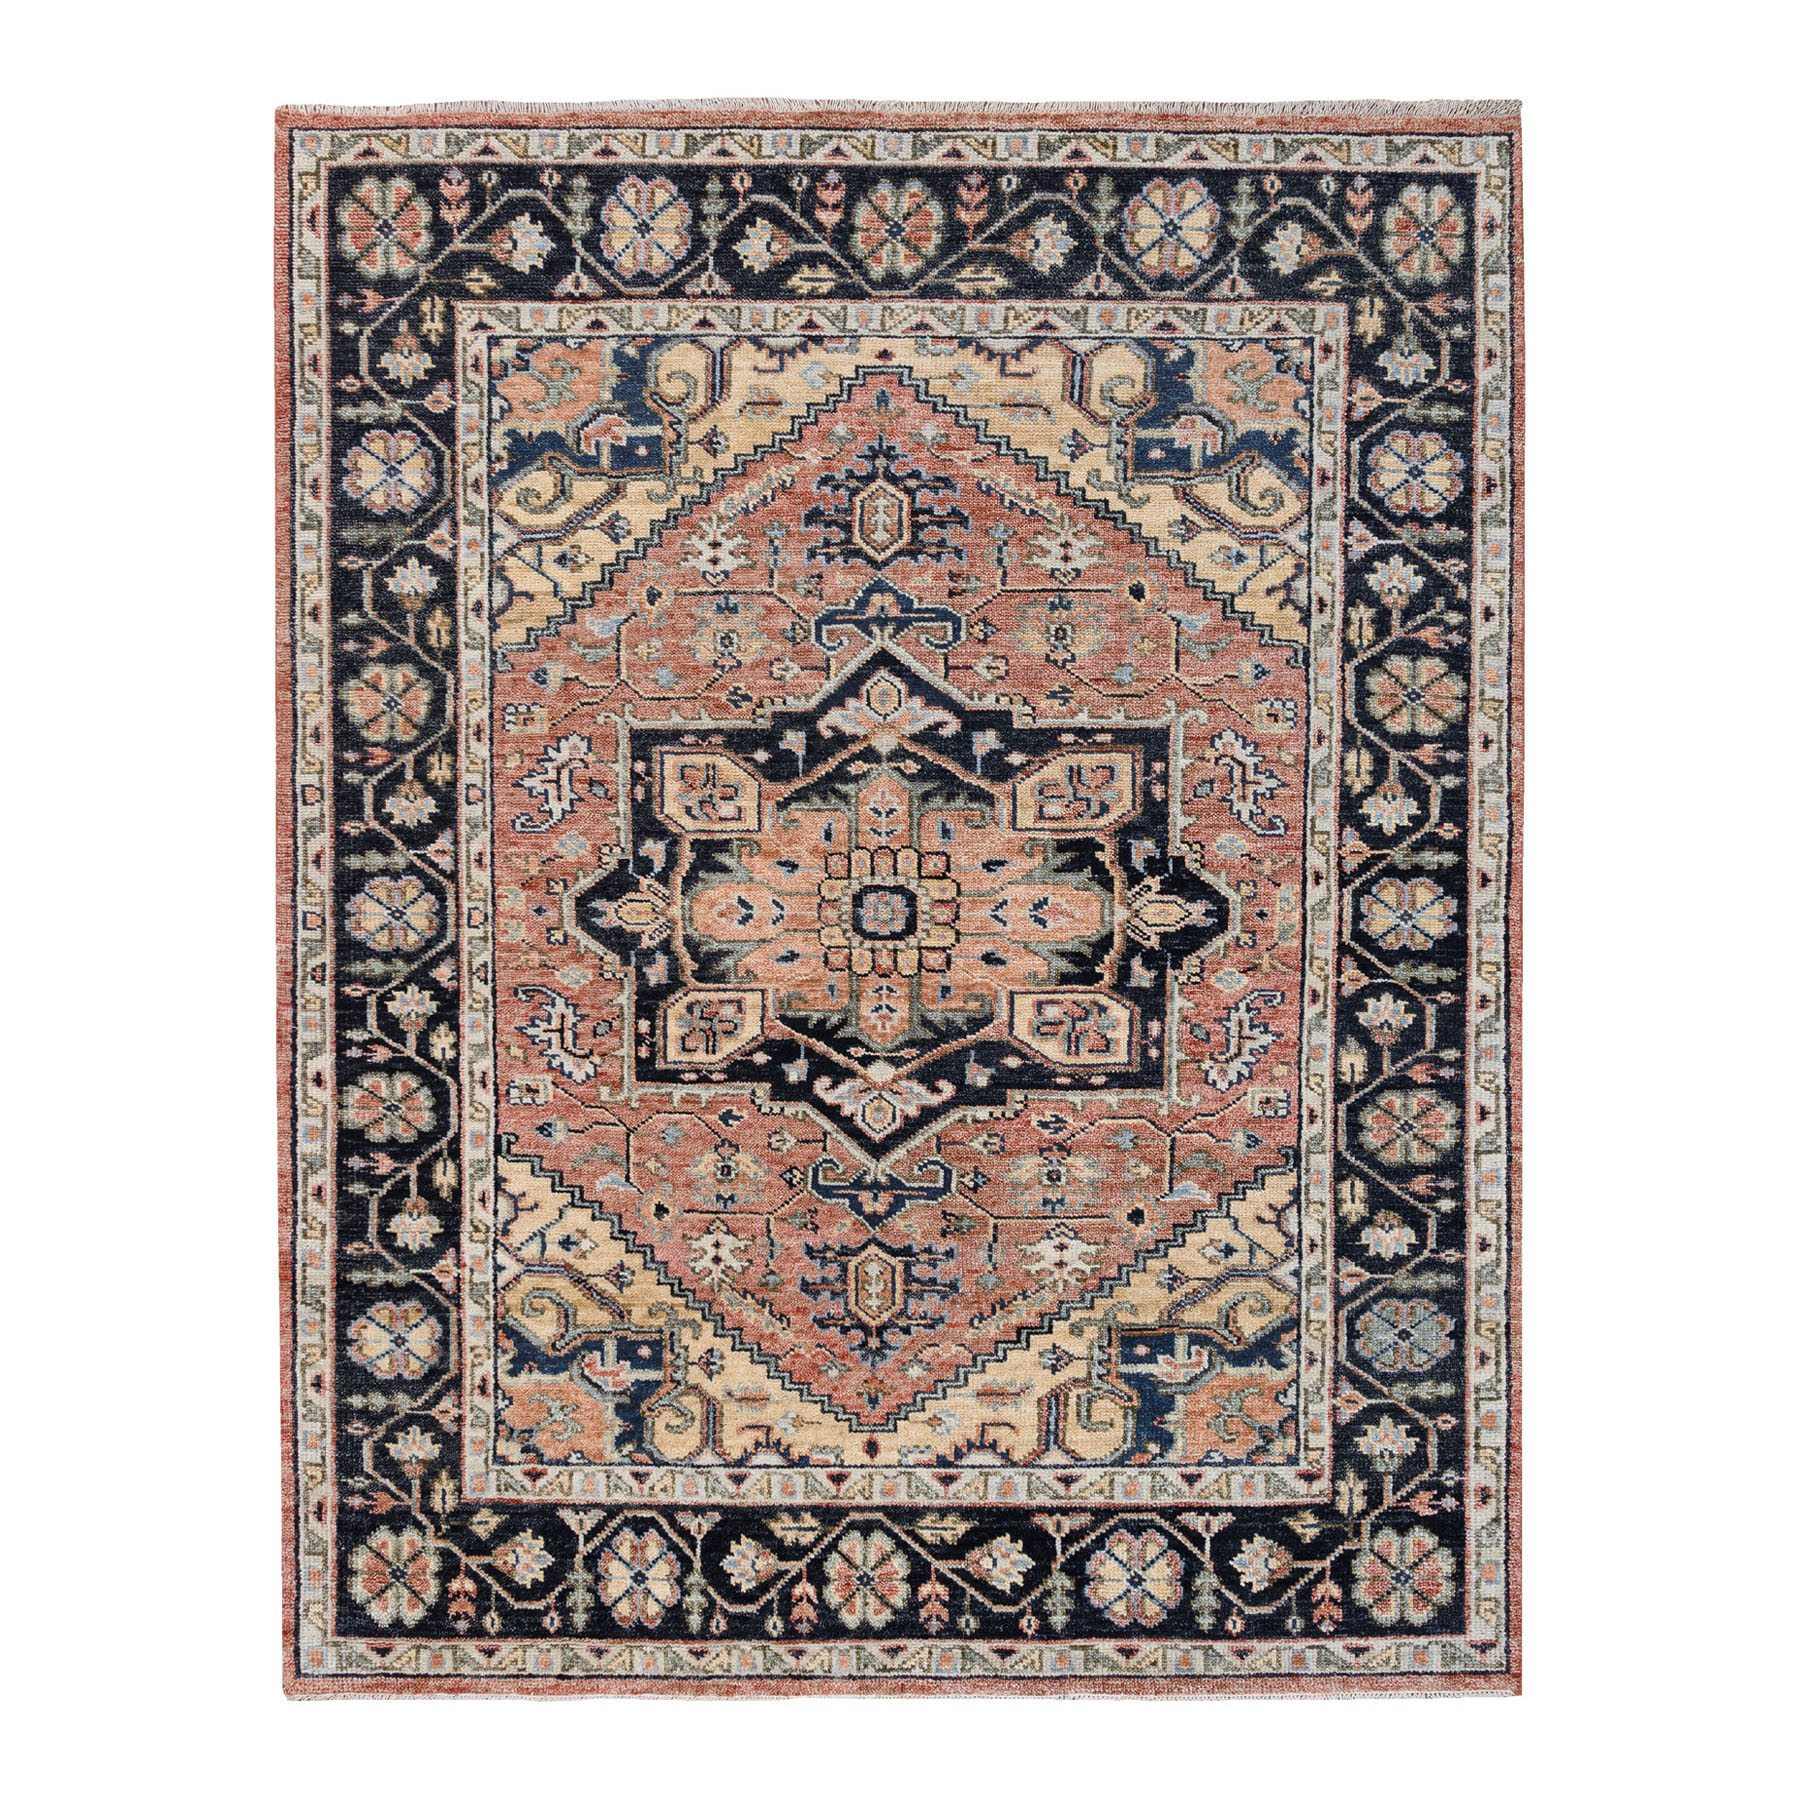 Tribal & Geometric Rugs LUV560016